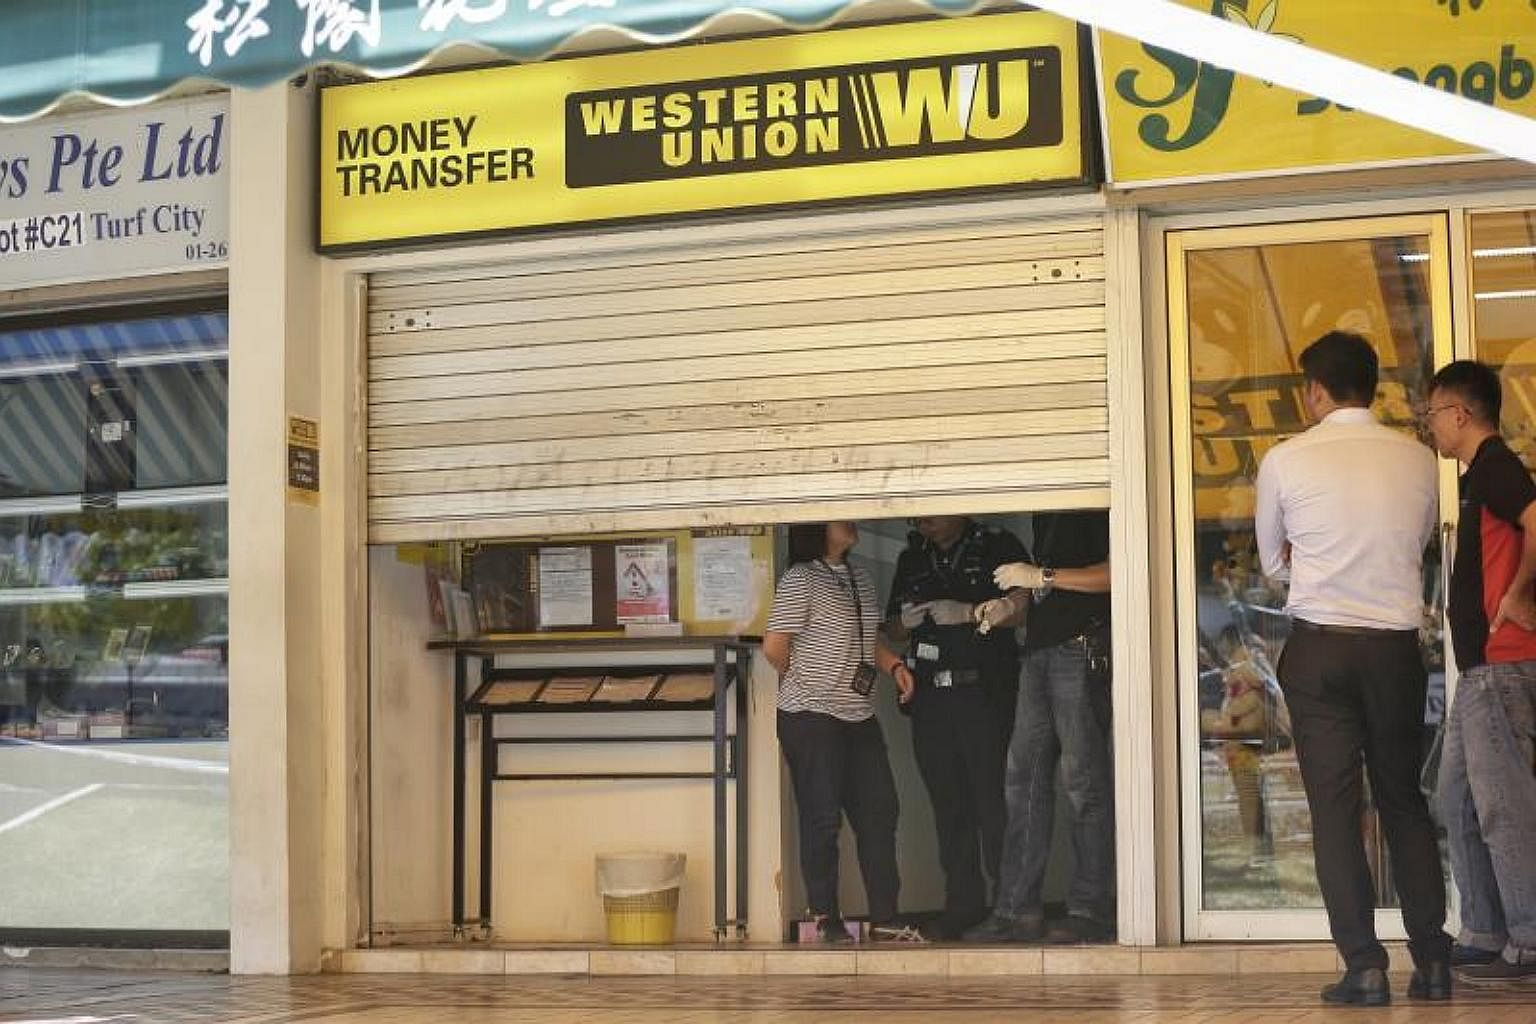 Singaporean Man Charged With Western Union Armed Robbery Courts Crime News Top Stories The Straits Times